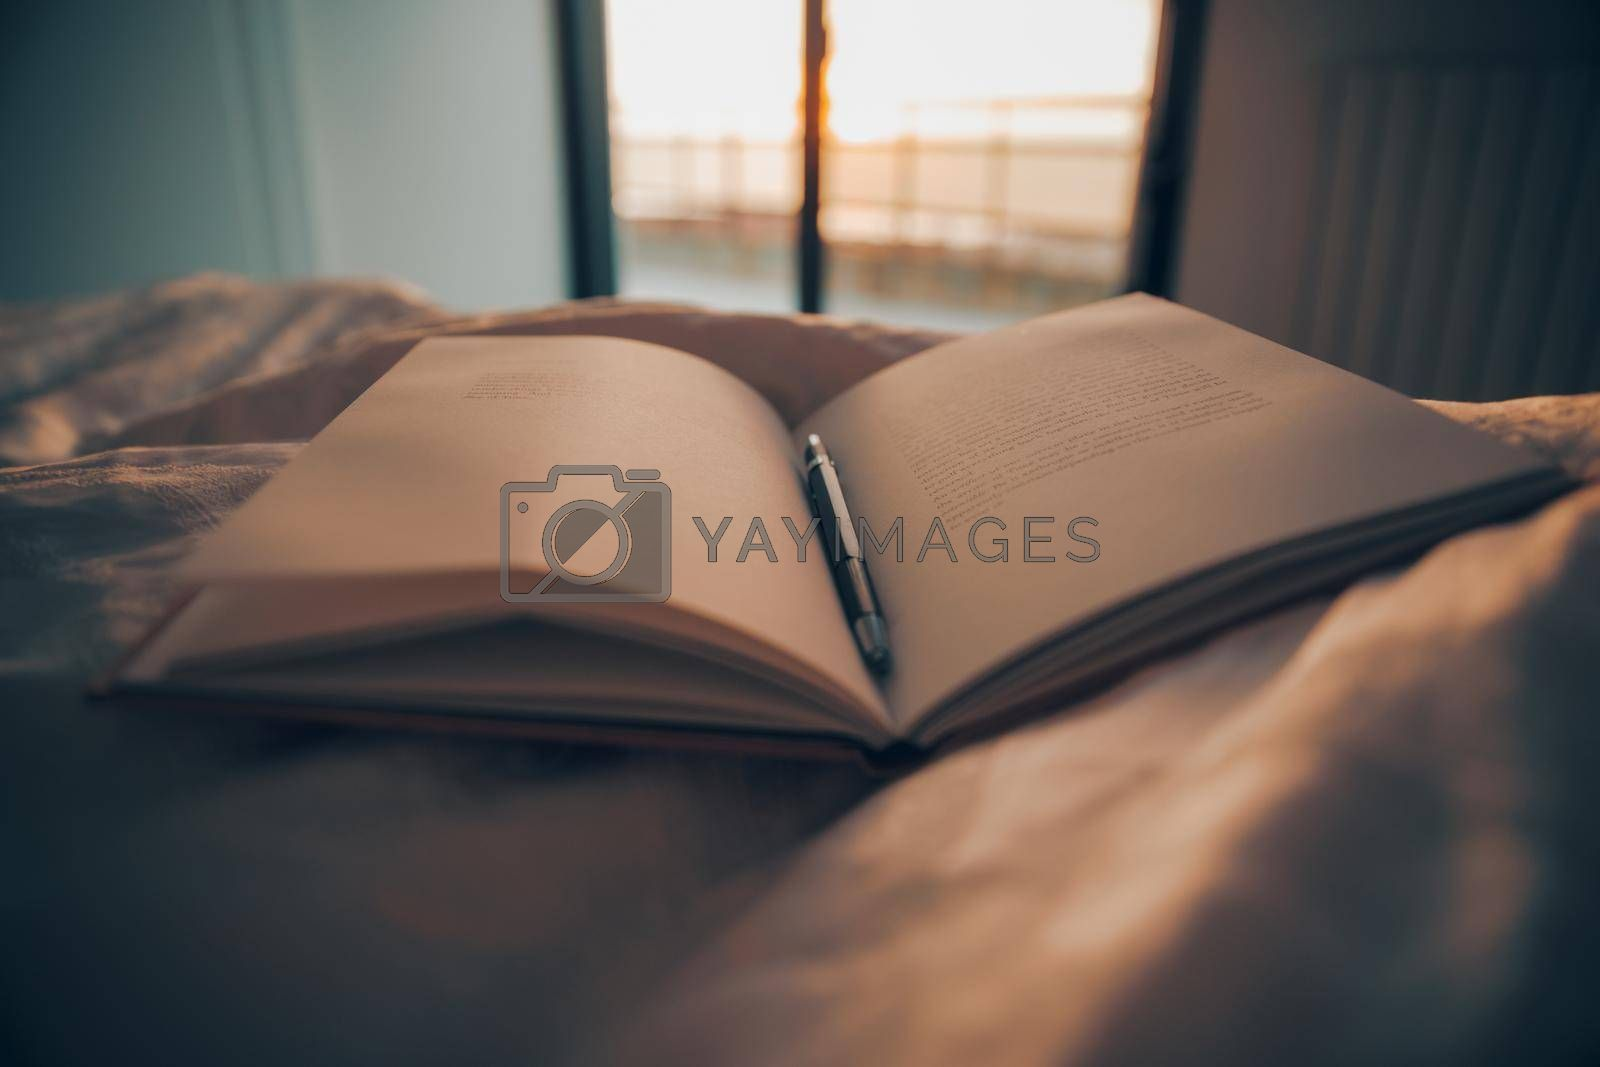 Cozy Evening at Home with a Good Book. Reading an Interesting Story. Making Remarks. Evening Chilling. Self-development Concept.